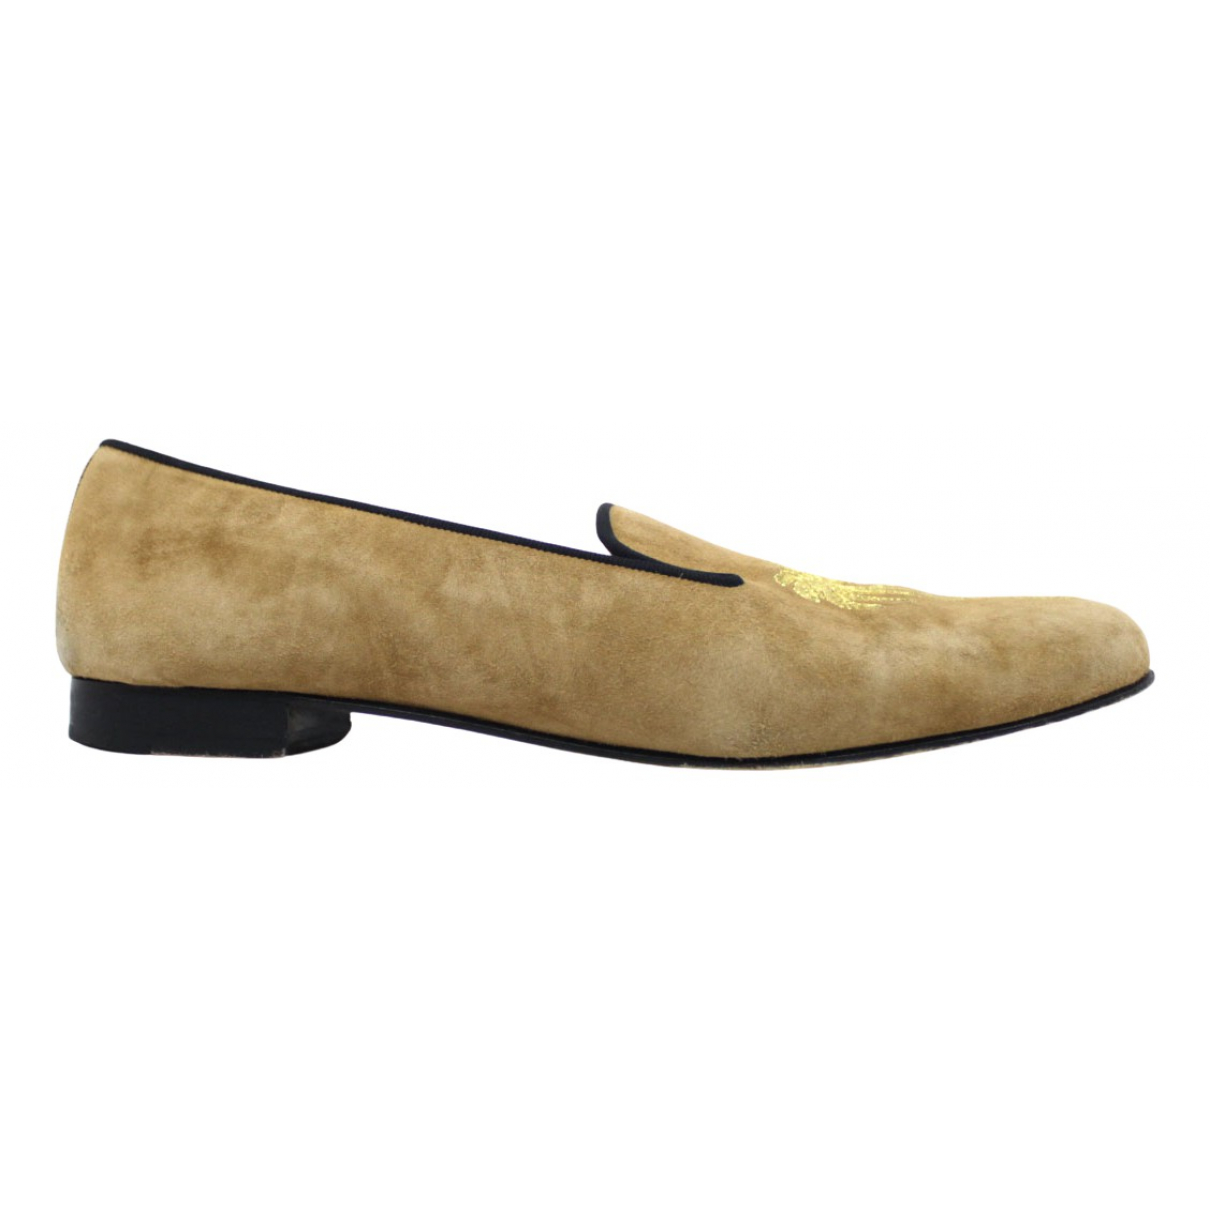 Penelope Chilvers \N Beige Suede Flats for Women 39 EU